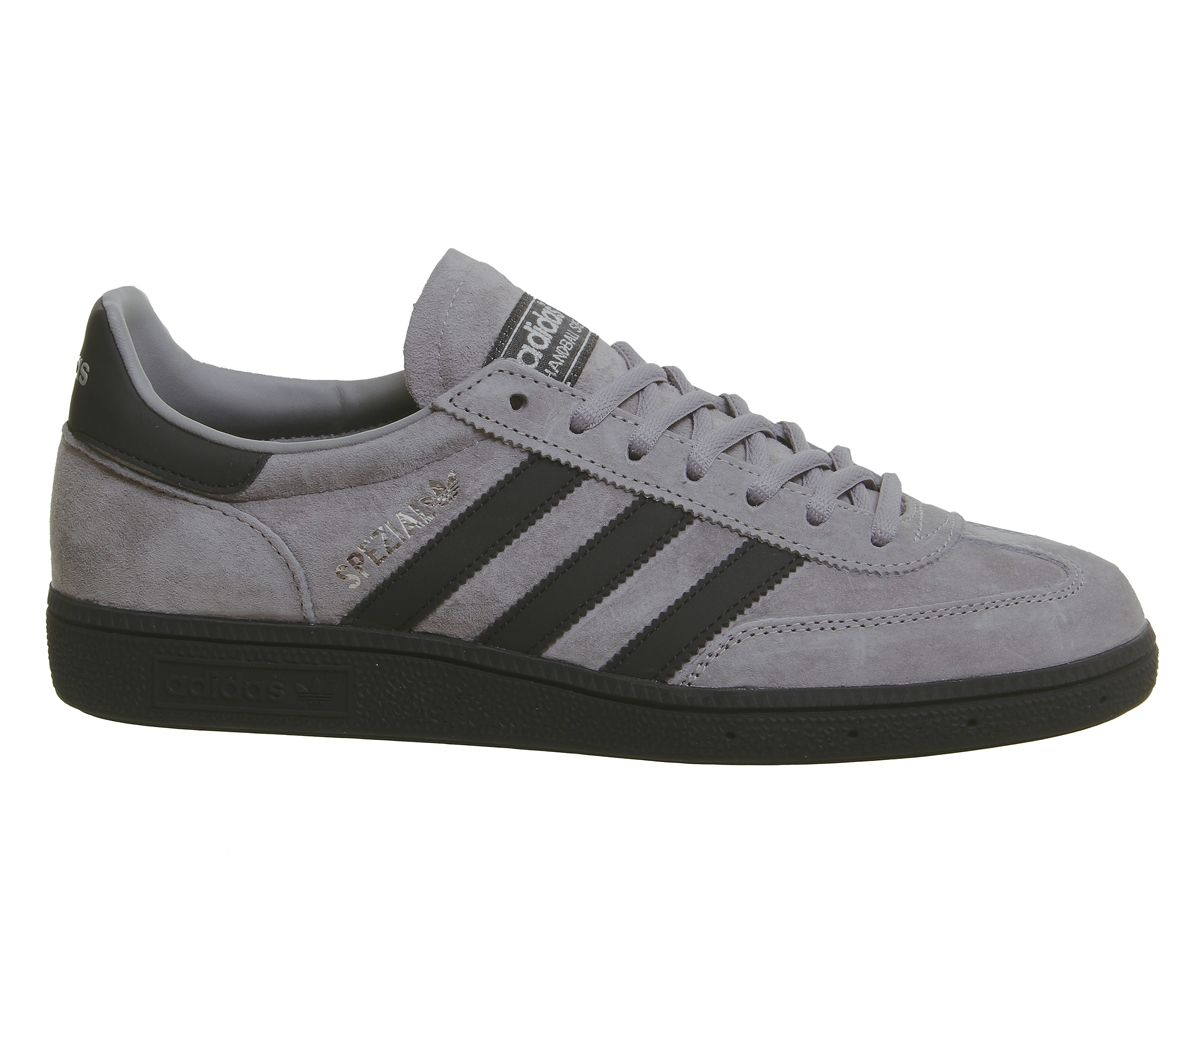 Adidas-Handball-Spezial-Trainers-Solid-Grey-Core-Black-Silver-Exclusive-Trainers thumbnail 10